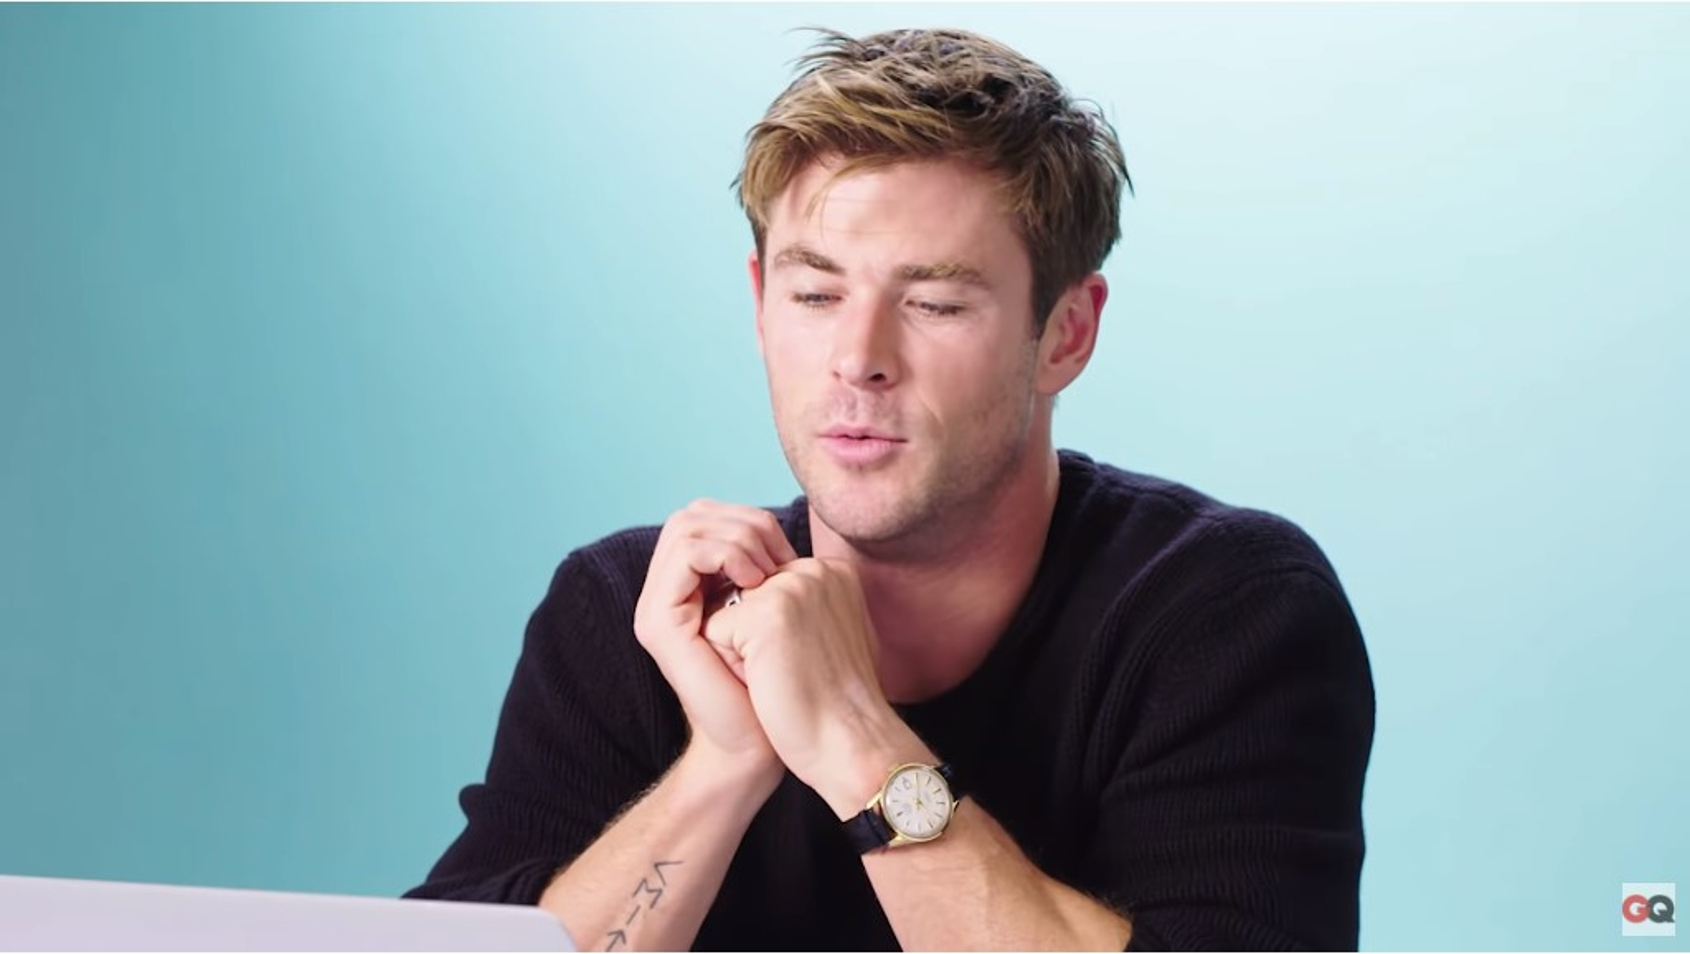 Watchspotting Chris Hemsworth Schools The Internet On How To Casually Wear A Simple Gold Watch